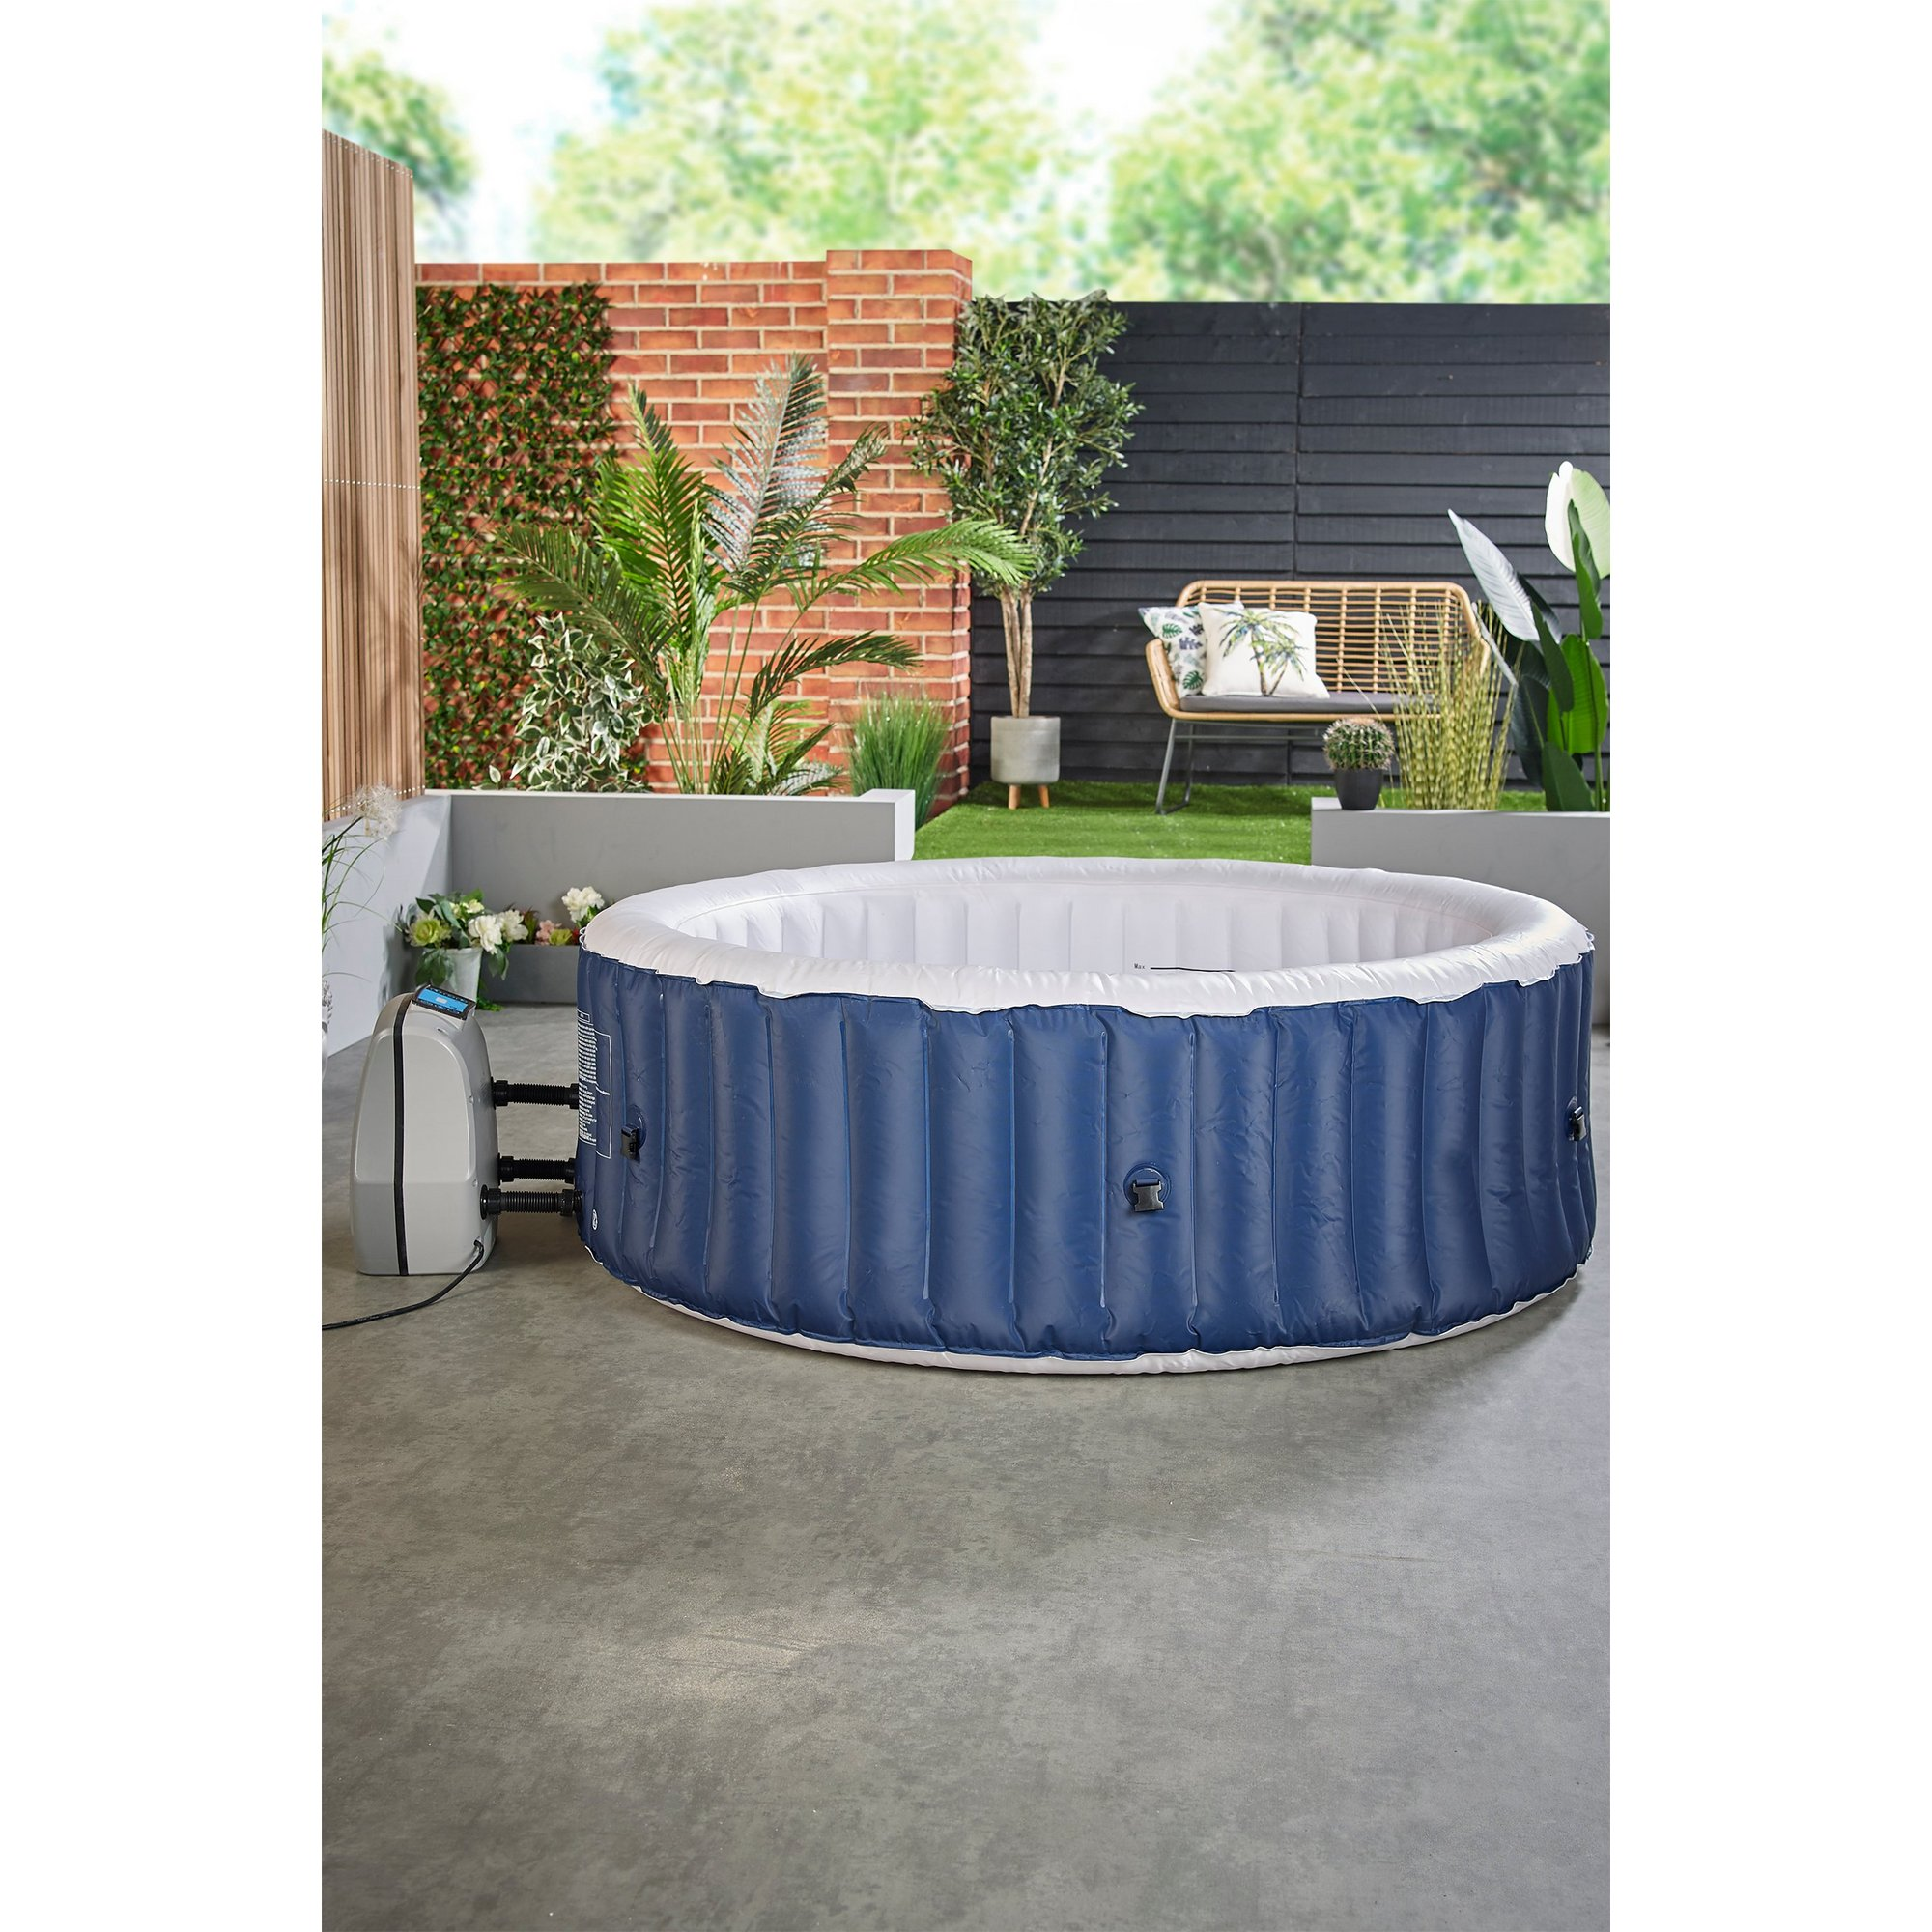 Image of 6 Person Spa